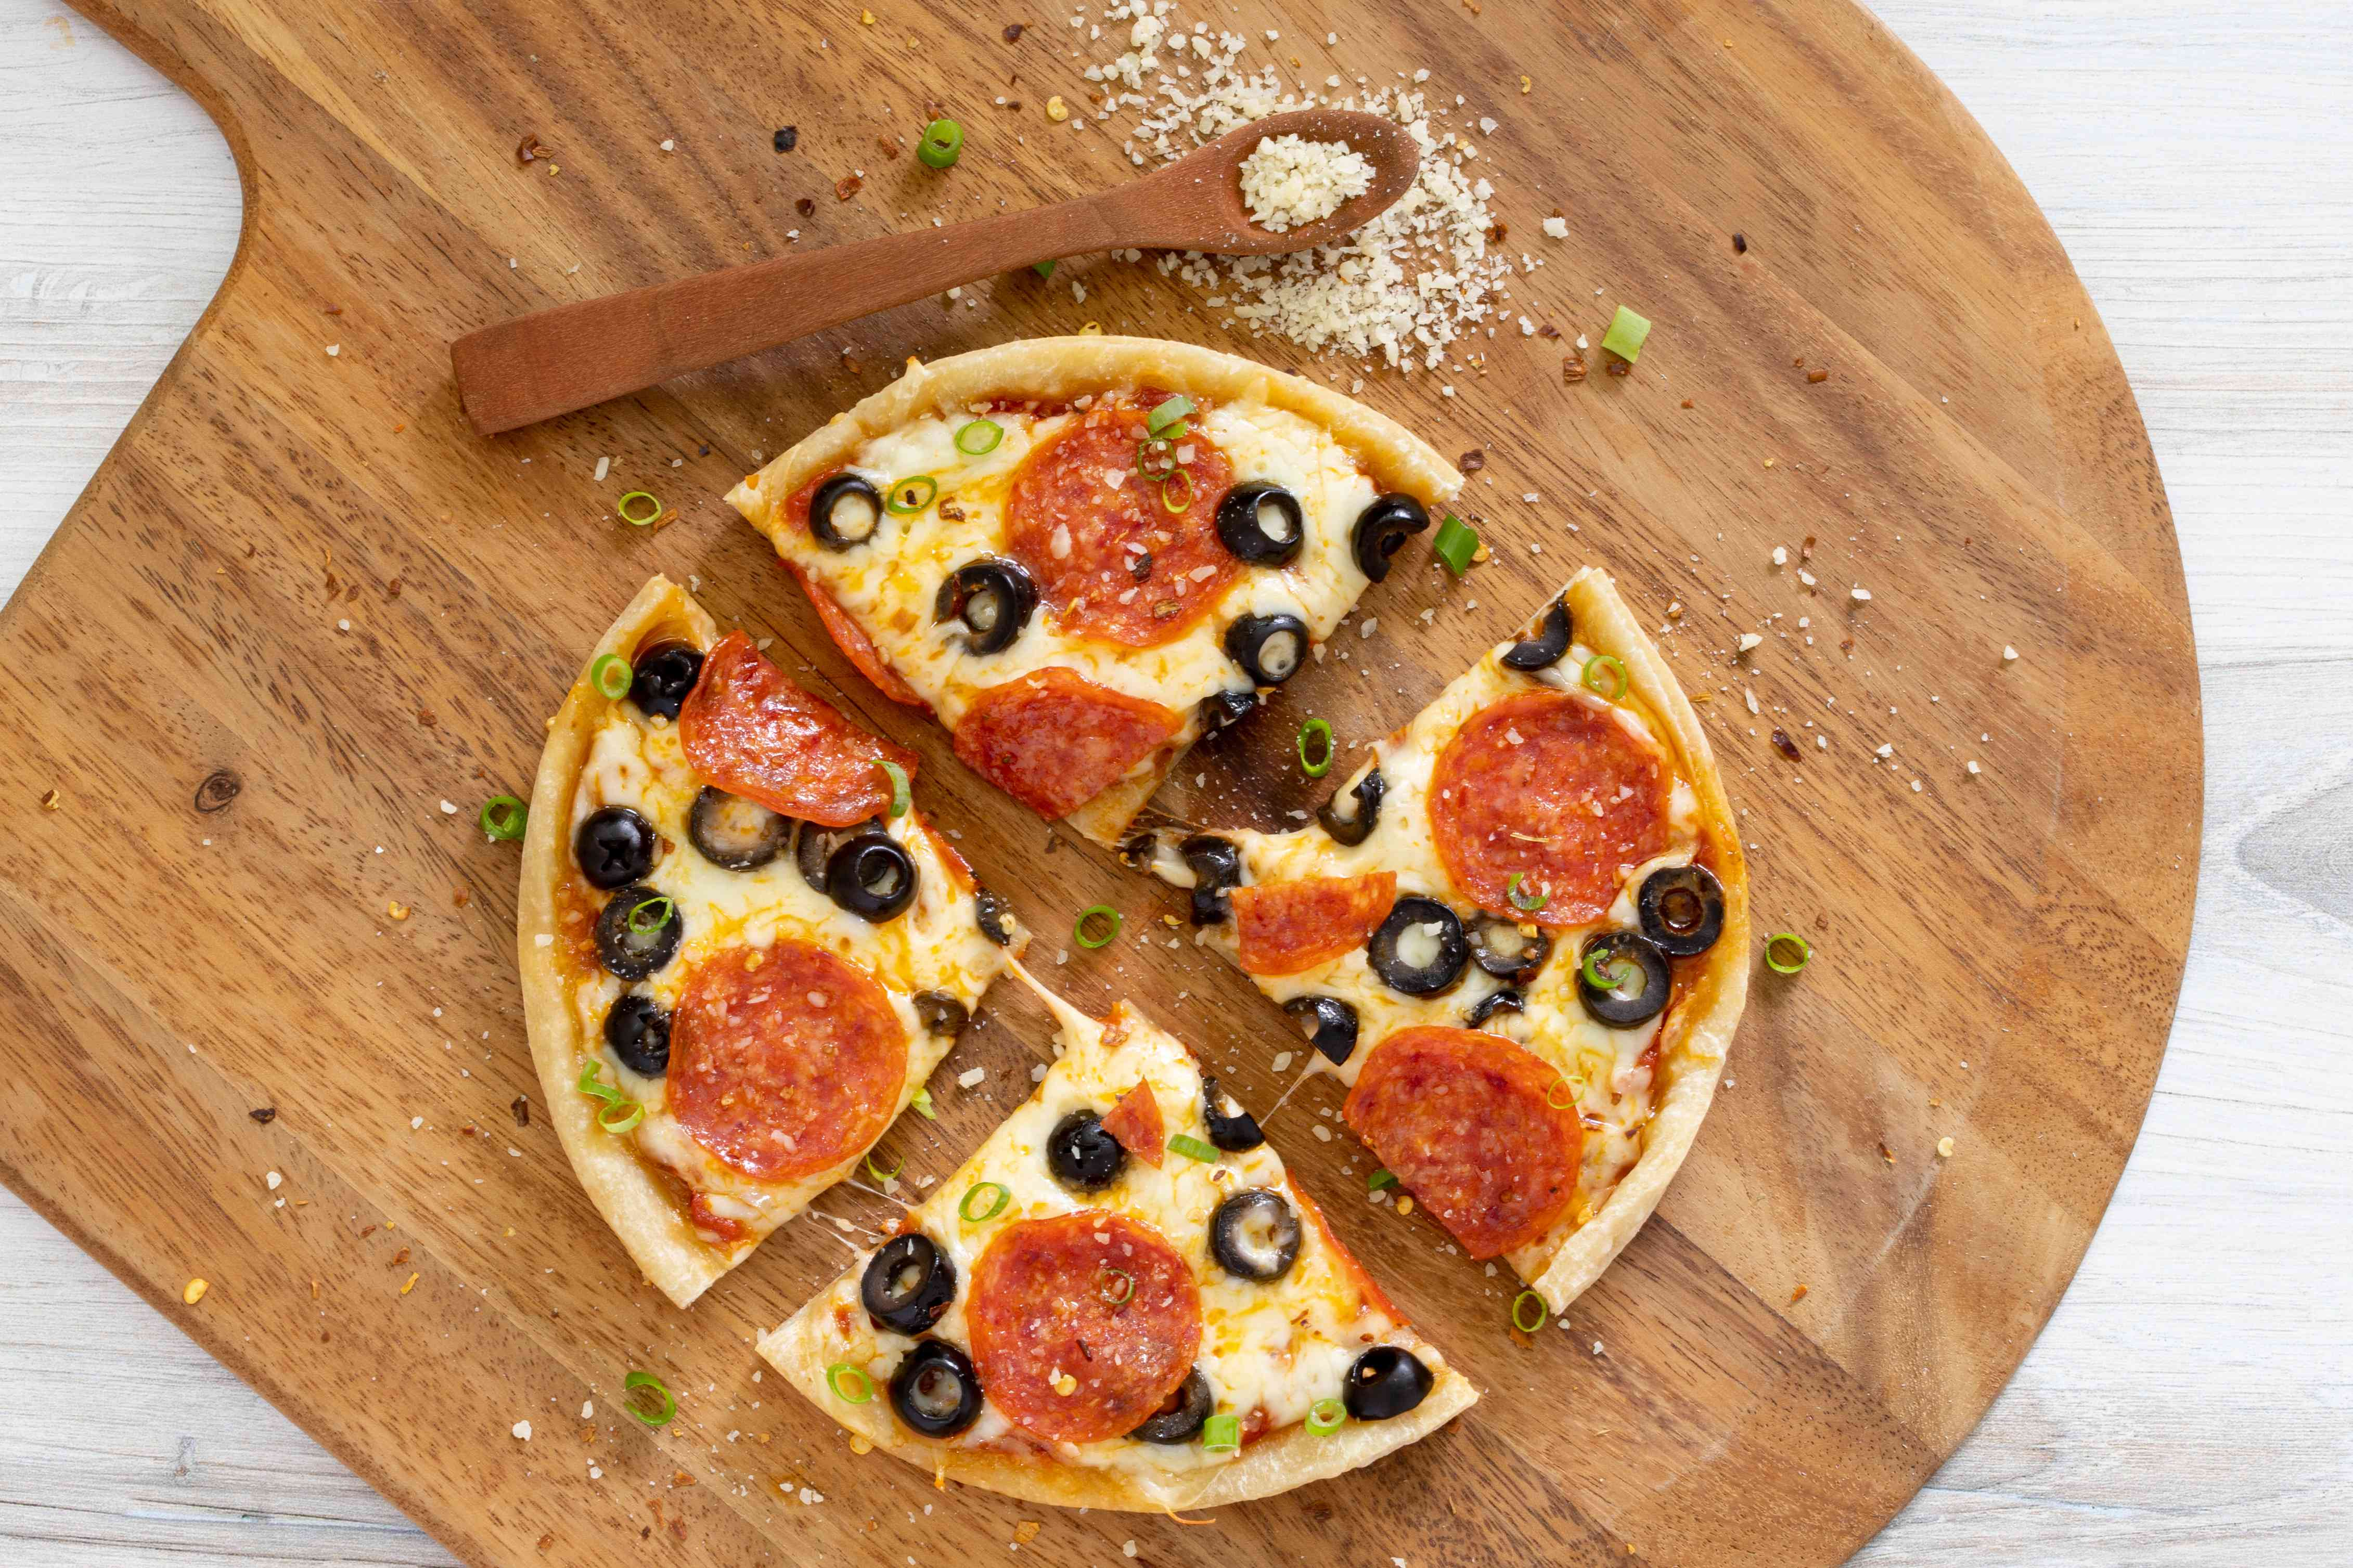 instant pot pizza ready to eat